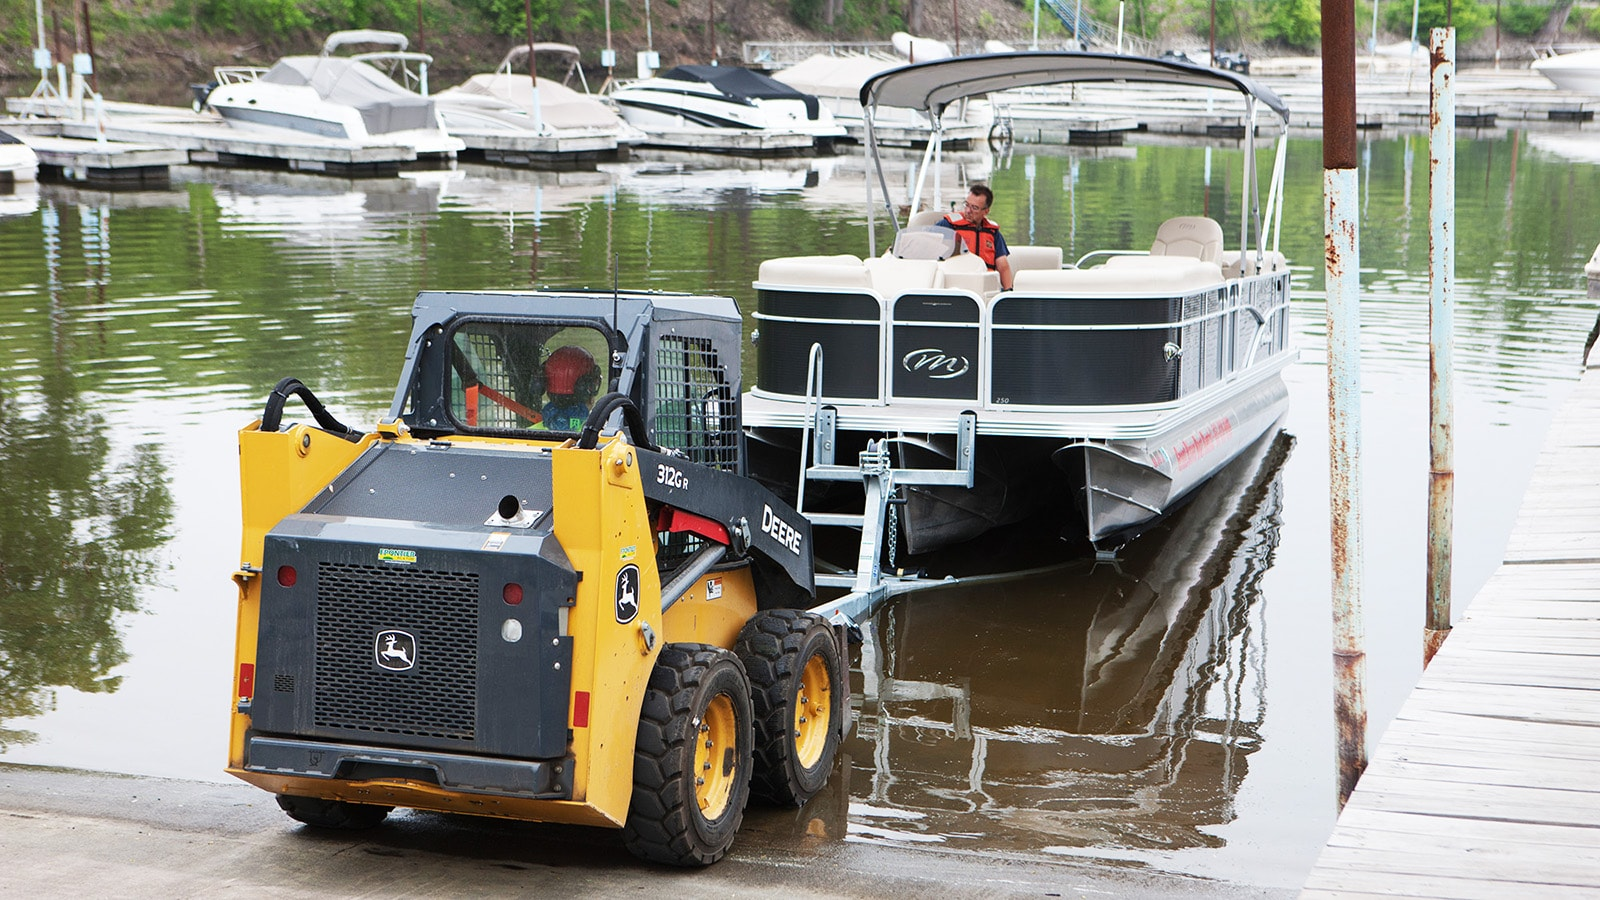 312GR Skid Steer pulls a pontoon boat out of the water